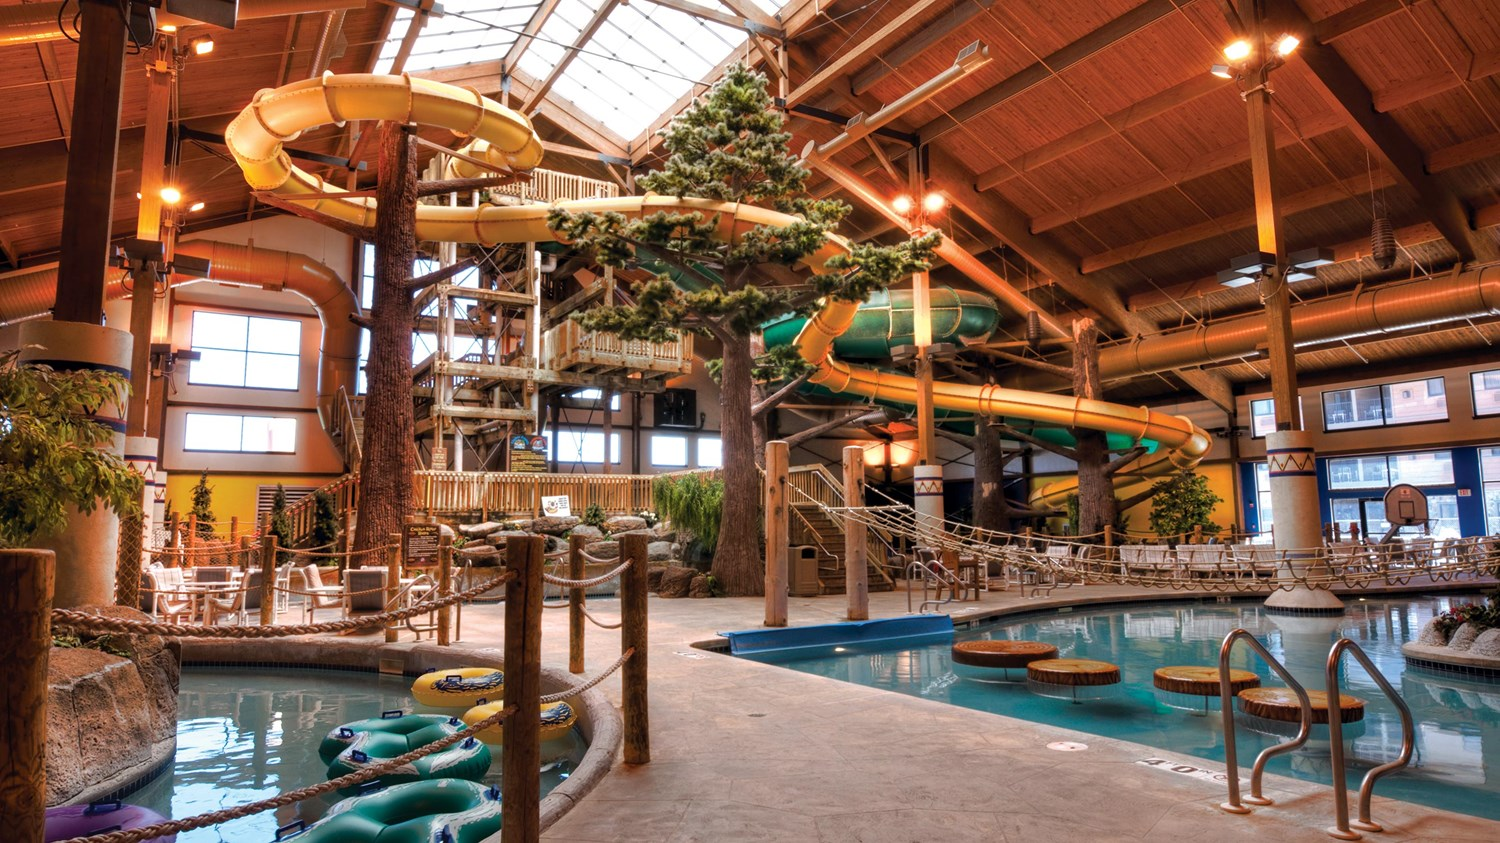 Panoramic view of the indoor waterpark